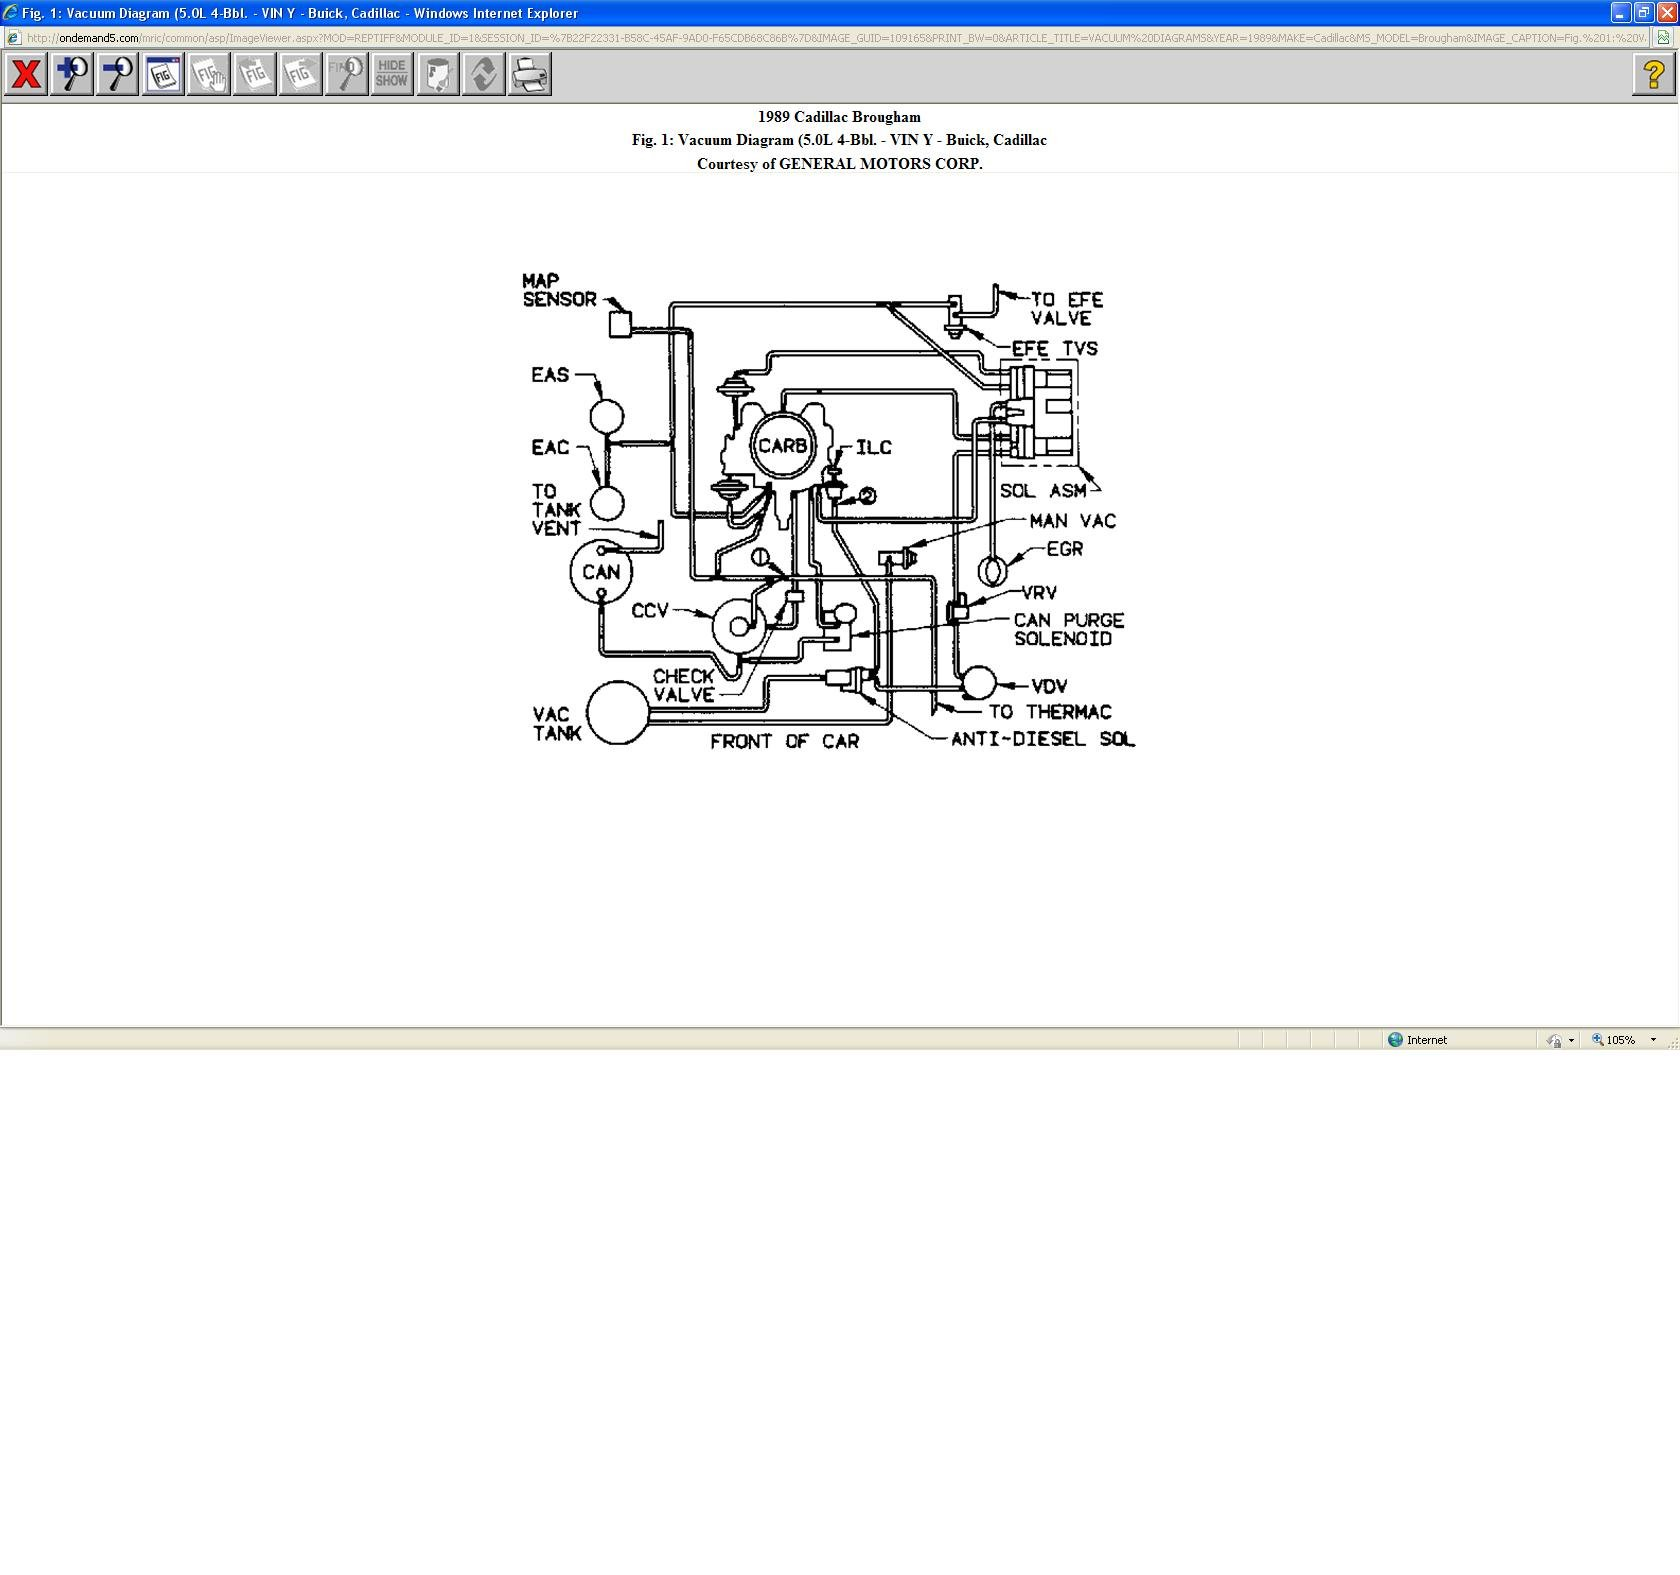 1970 olds cutl vacuum line diagrams  1970  get free image about wiring diagram 1988 Cadillac Brougham 1990 Cadillac Brougham